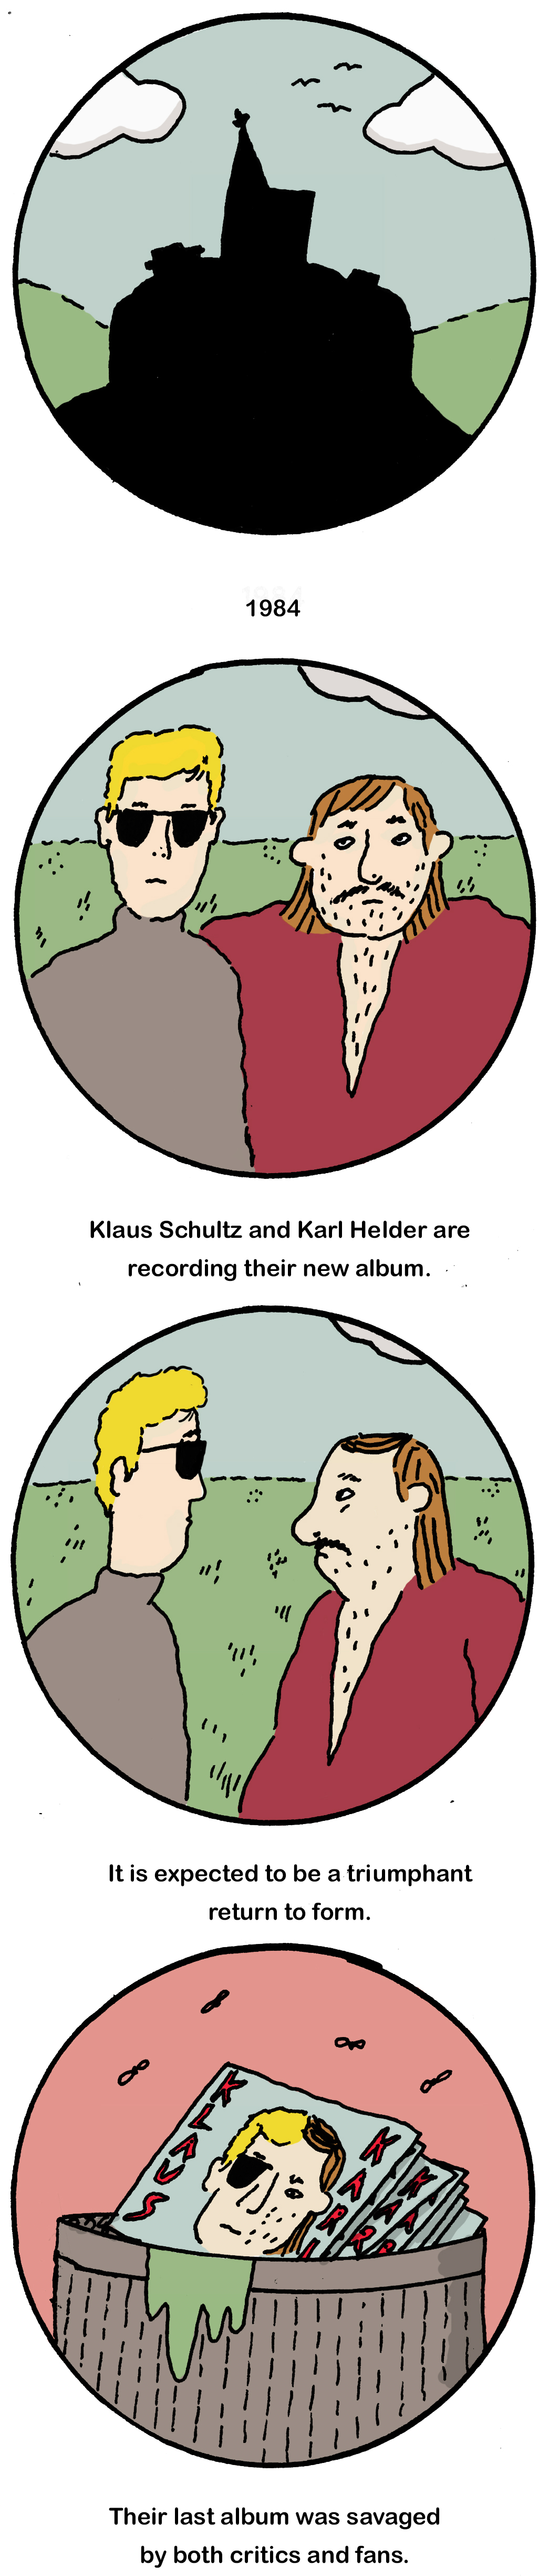 Klaus and Karl p1.jpg